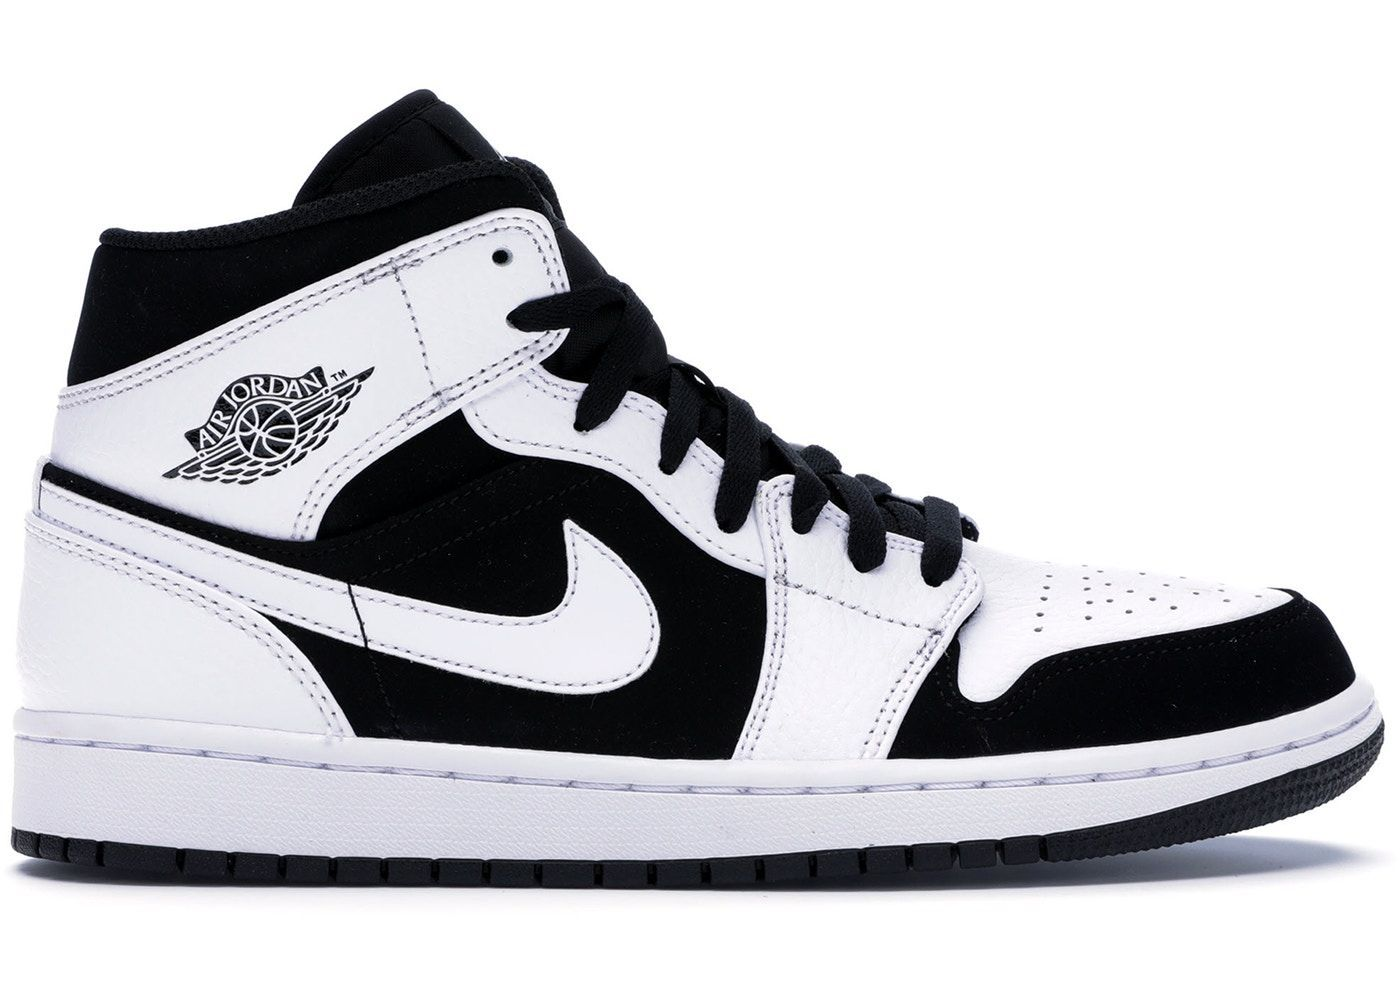 Acrylic Nails Discover Jordan 1 Mid White Black (GS) in